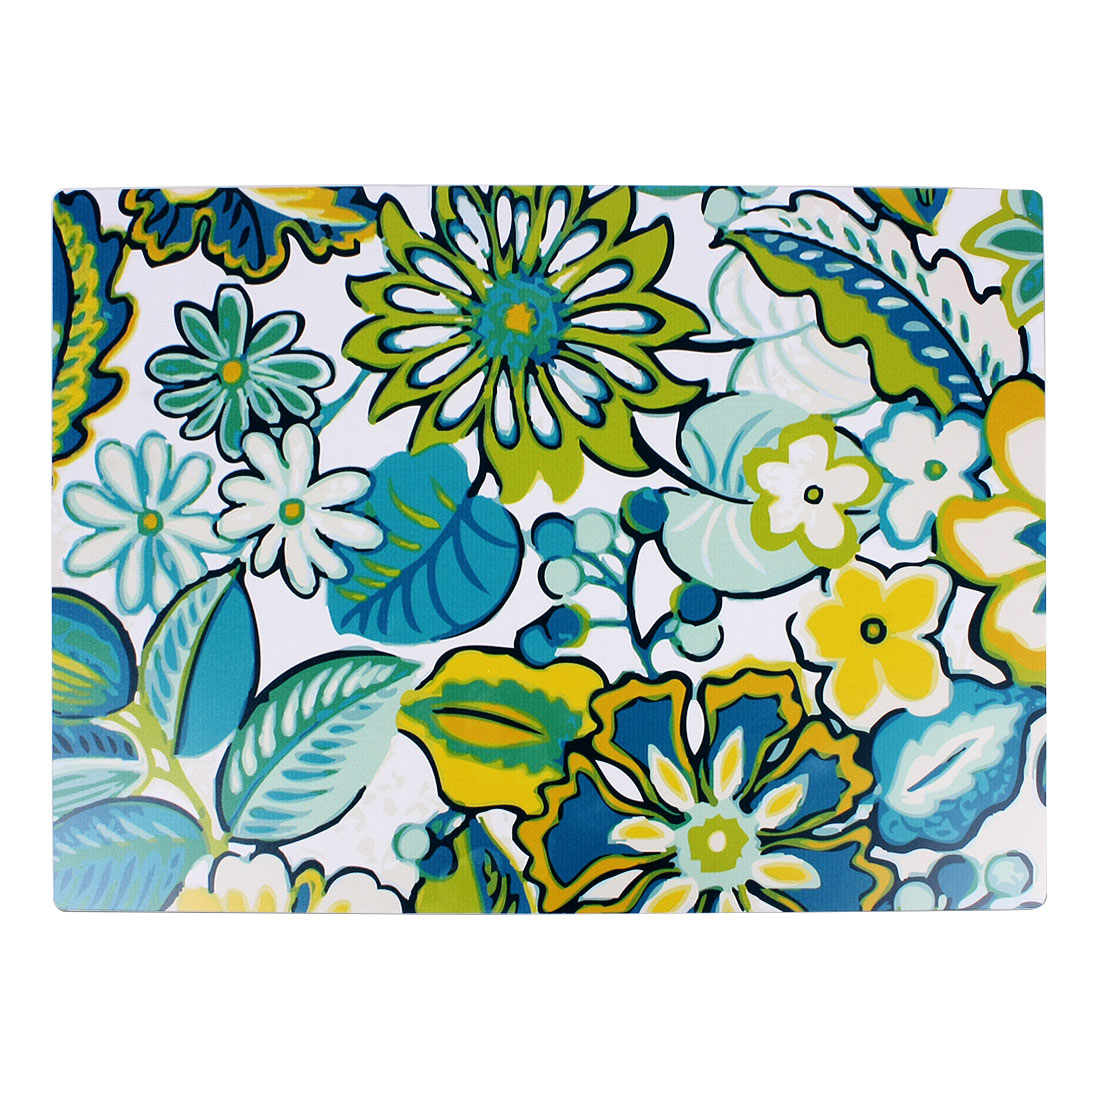 Dining Table Colorful Floral Print Rectangle Extra Large Placemat Beverage Pad